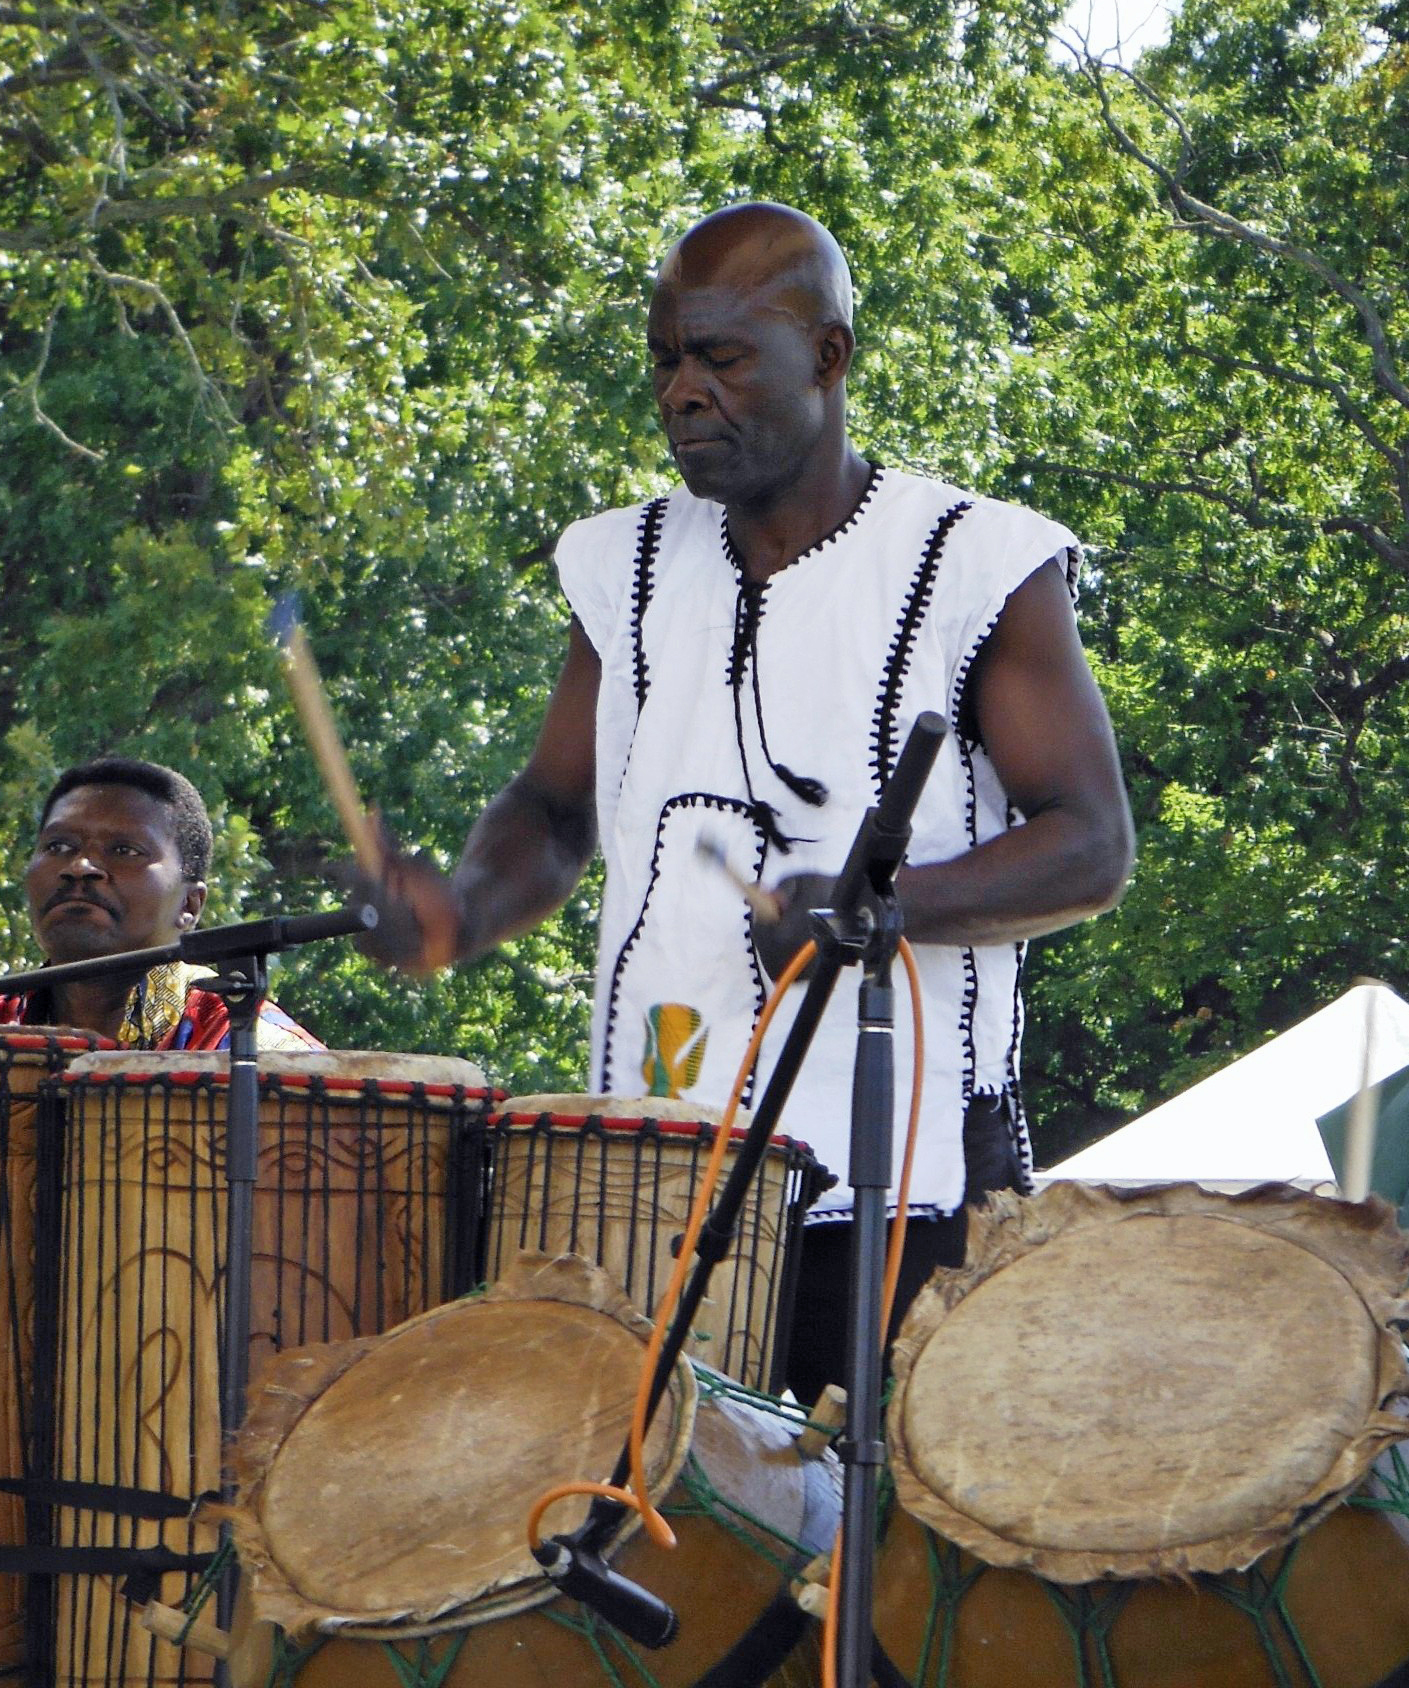 Koffi Zoe Dogbevi of Madison, originally from Lome, Togo, taught apprentices West African drumming.